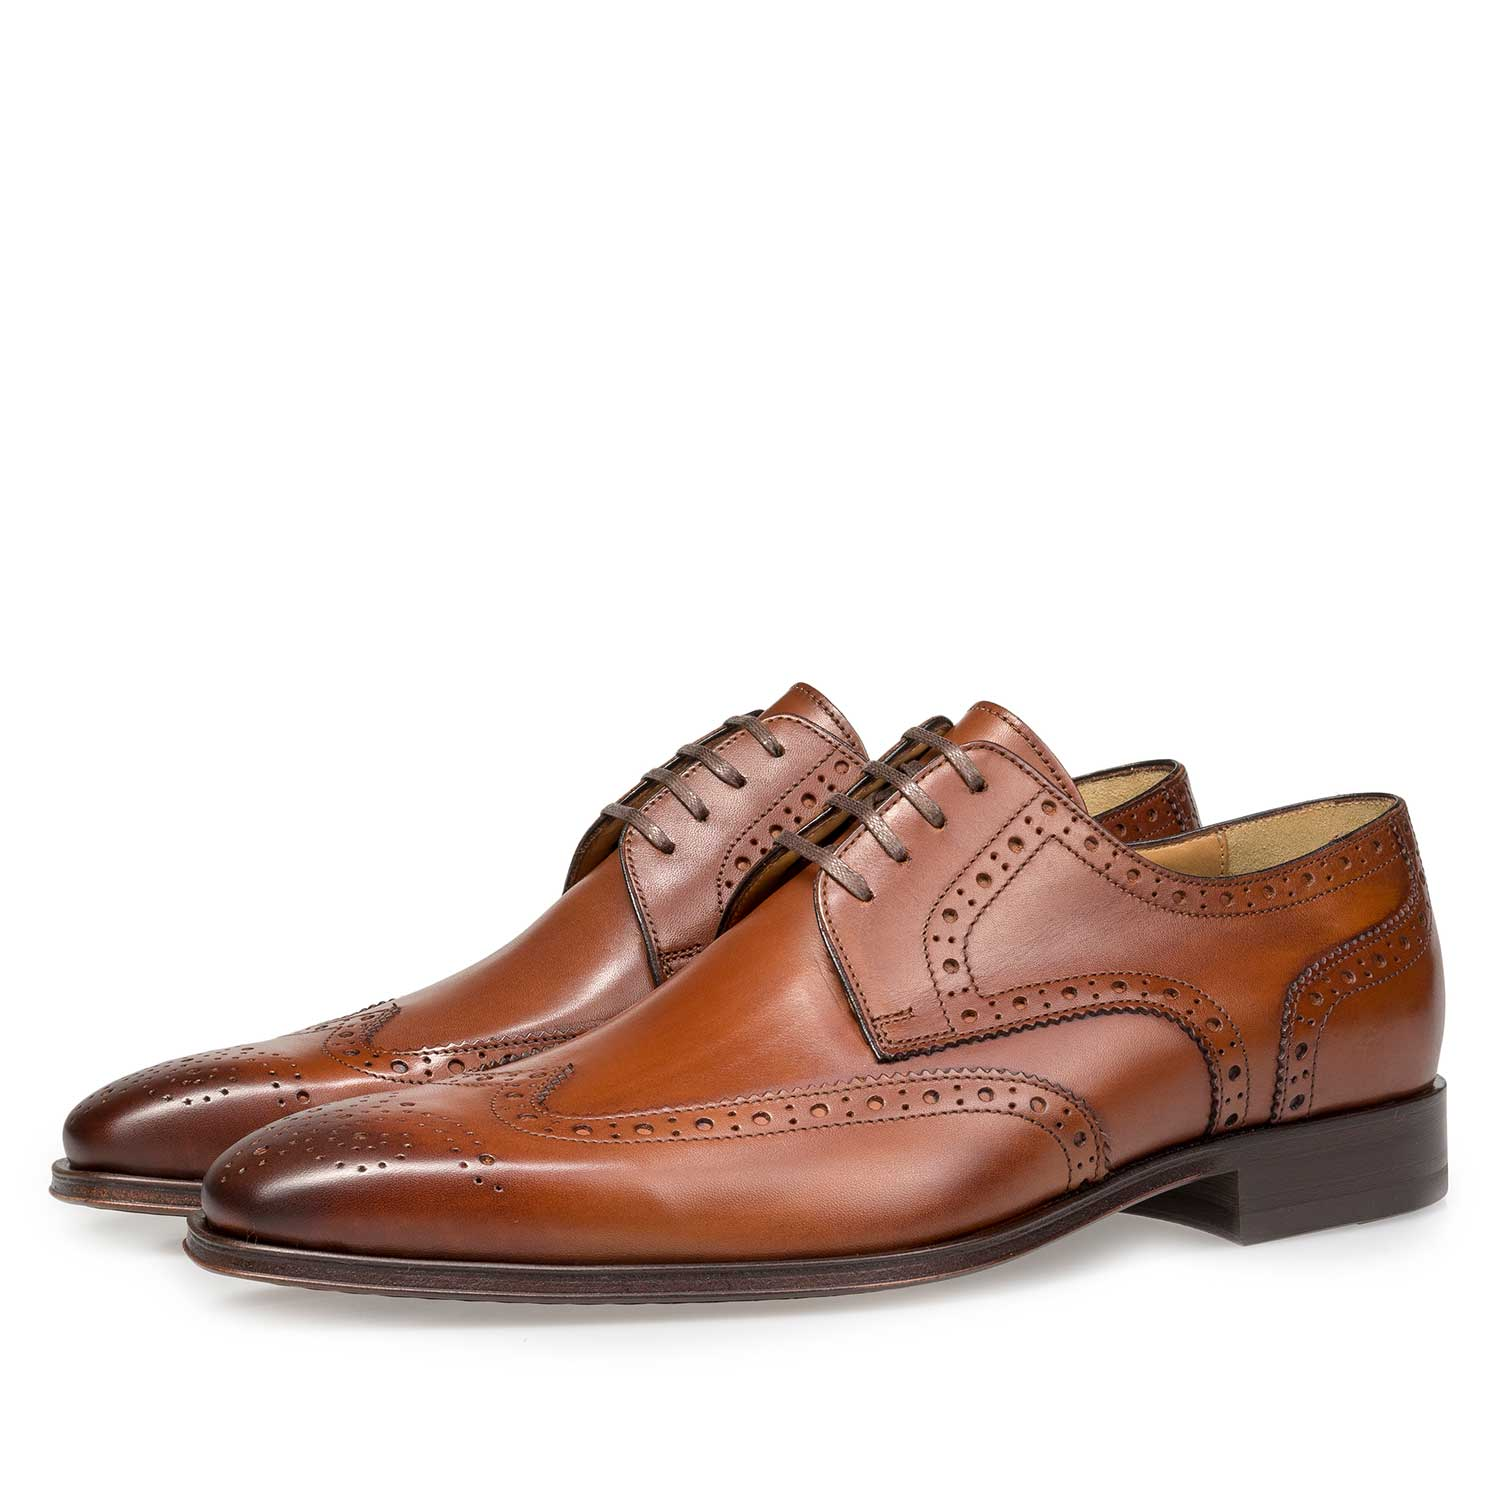 17099/01 - Cognac-coloured calf leather brogue